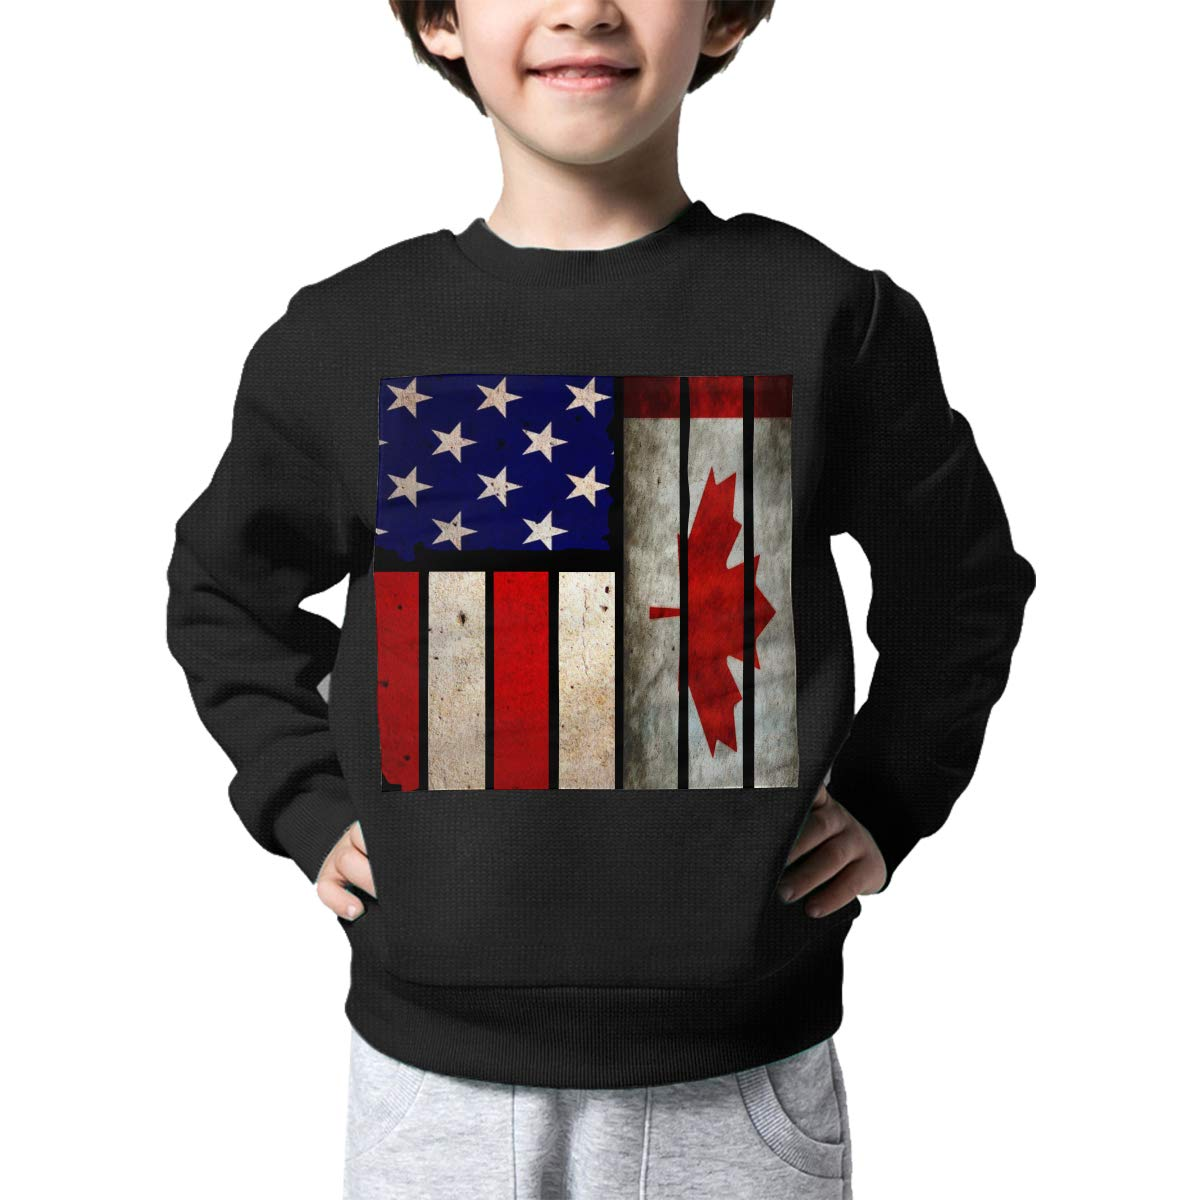 Boys Girls Vintage USA Canada Flag Lovely Sweaters Soft Warm Childrens Sweater